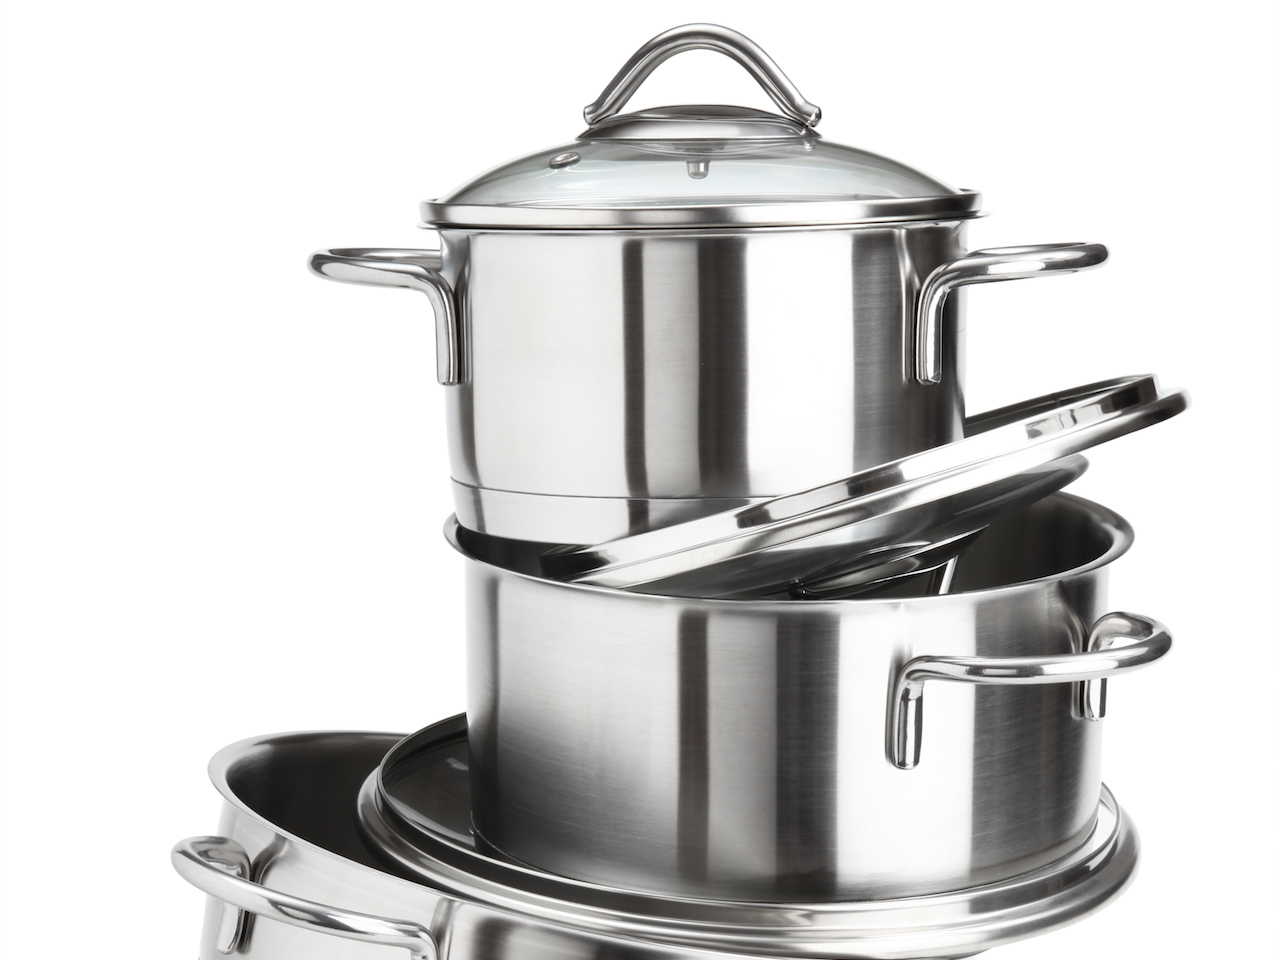 Cheap Kitchen Appliances How To Clean Stainless Steel Appliances Pots And Pans Chatelaine